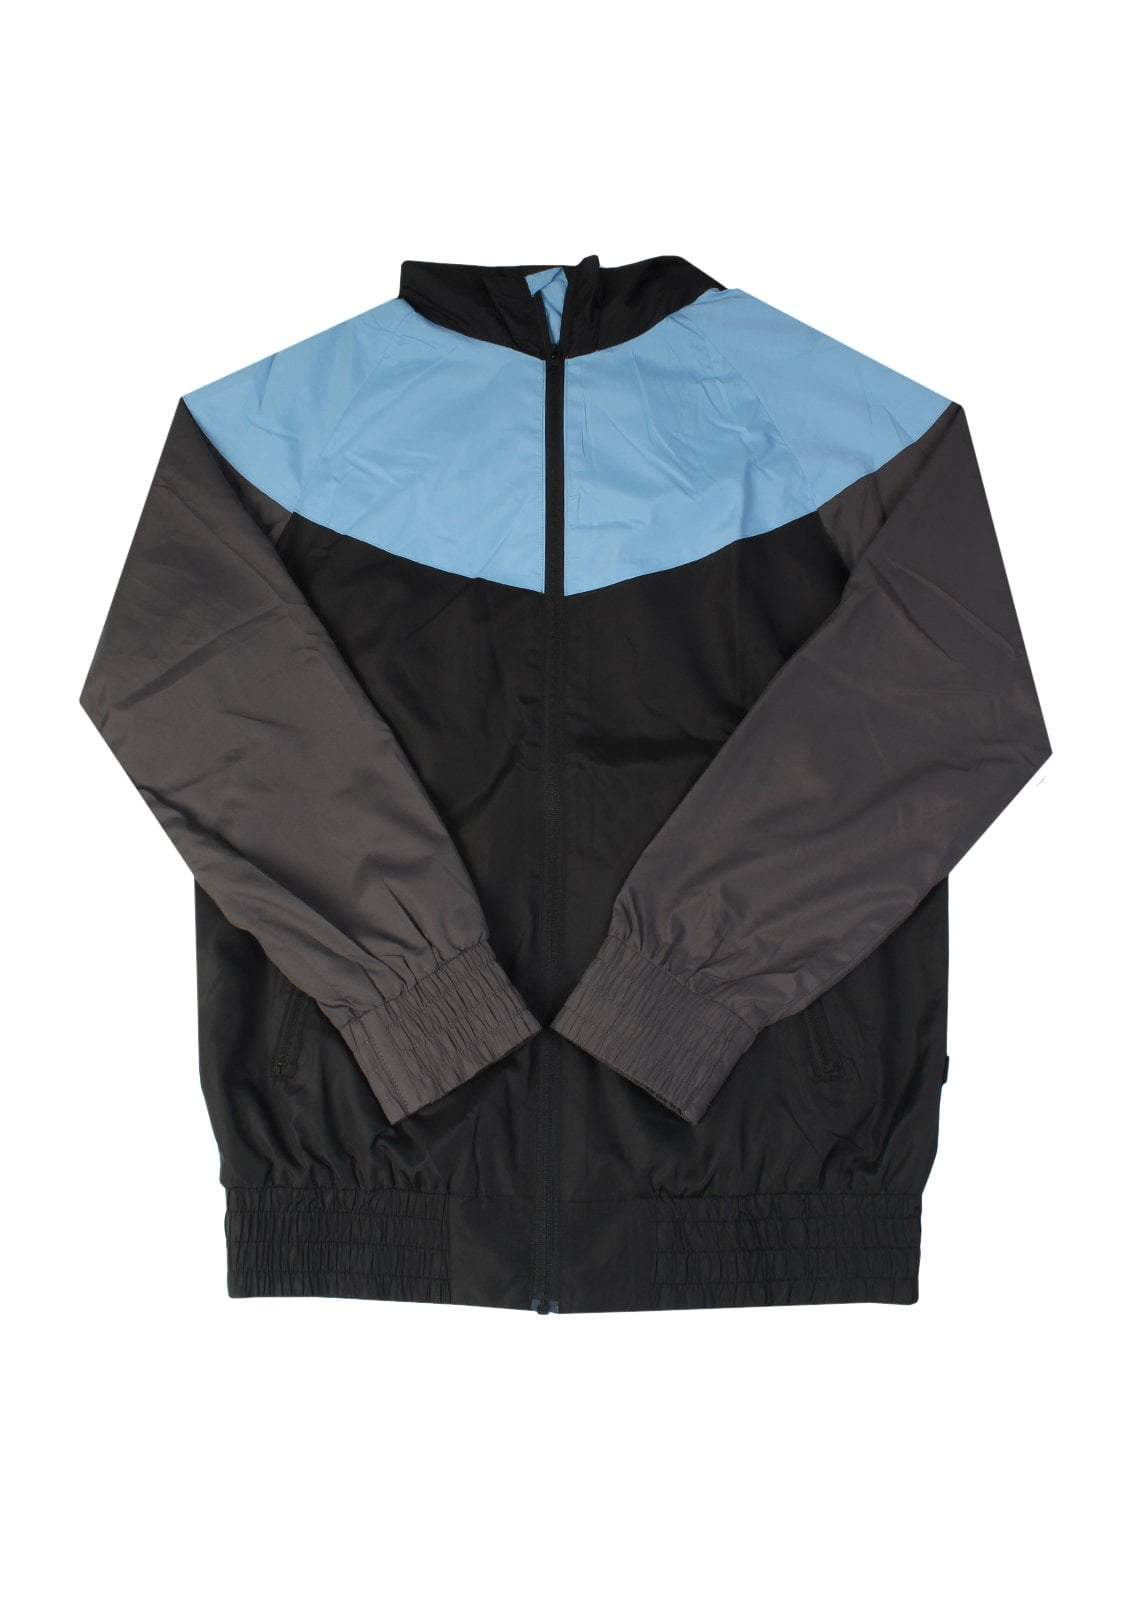 Lendl Windbreaker Jacket